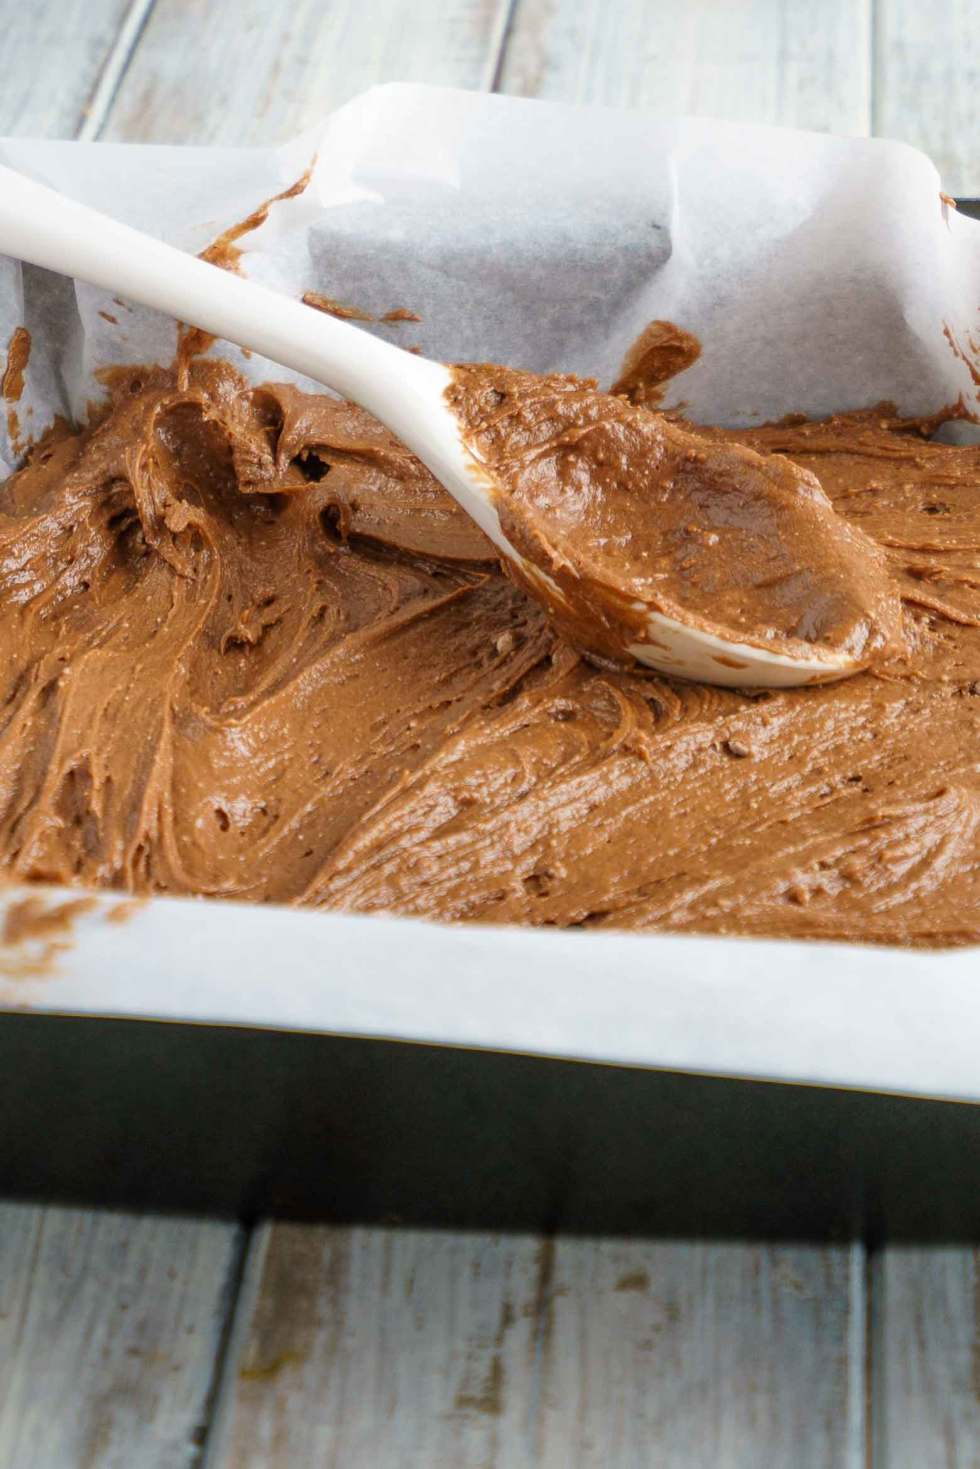 Chocolate cake mix and butter combine to make a crust